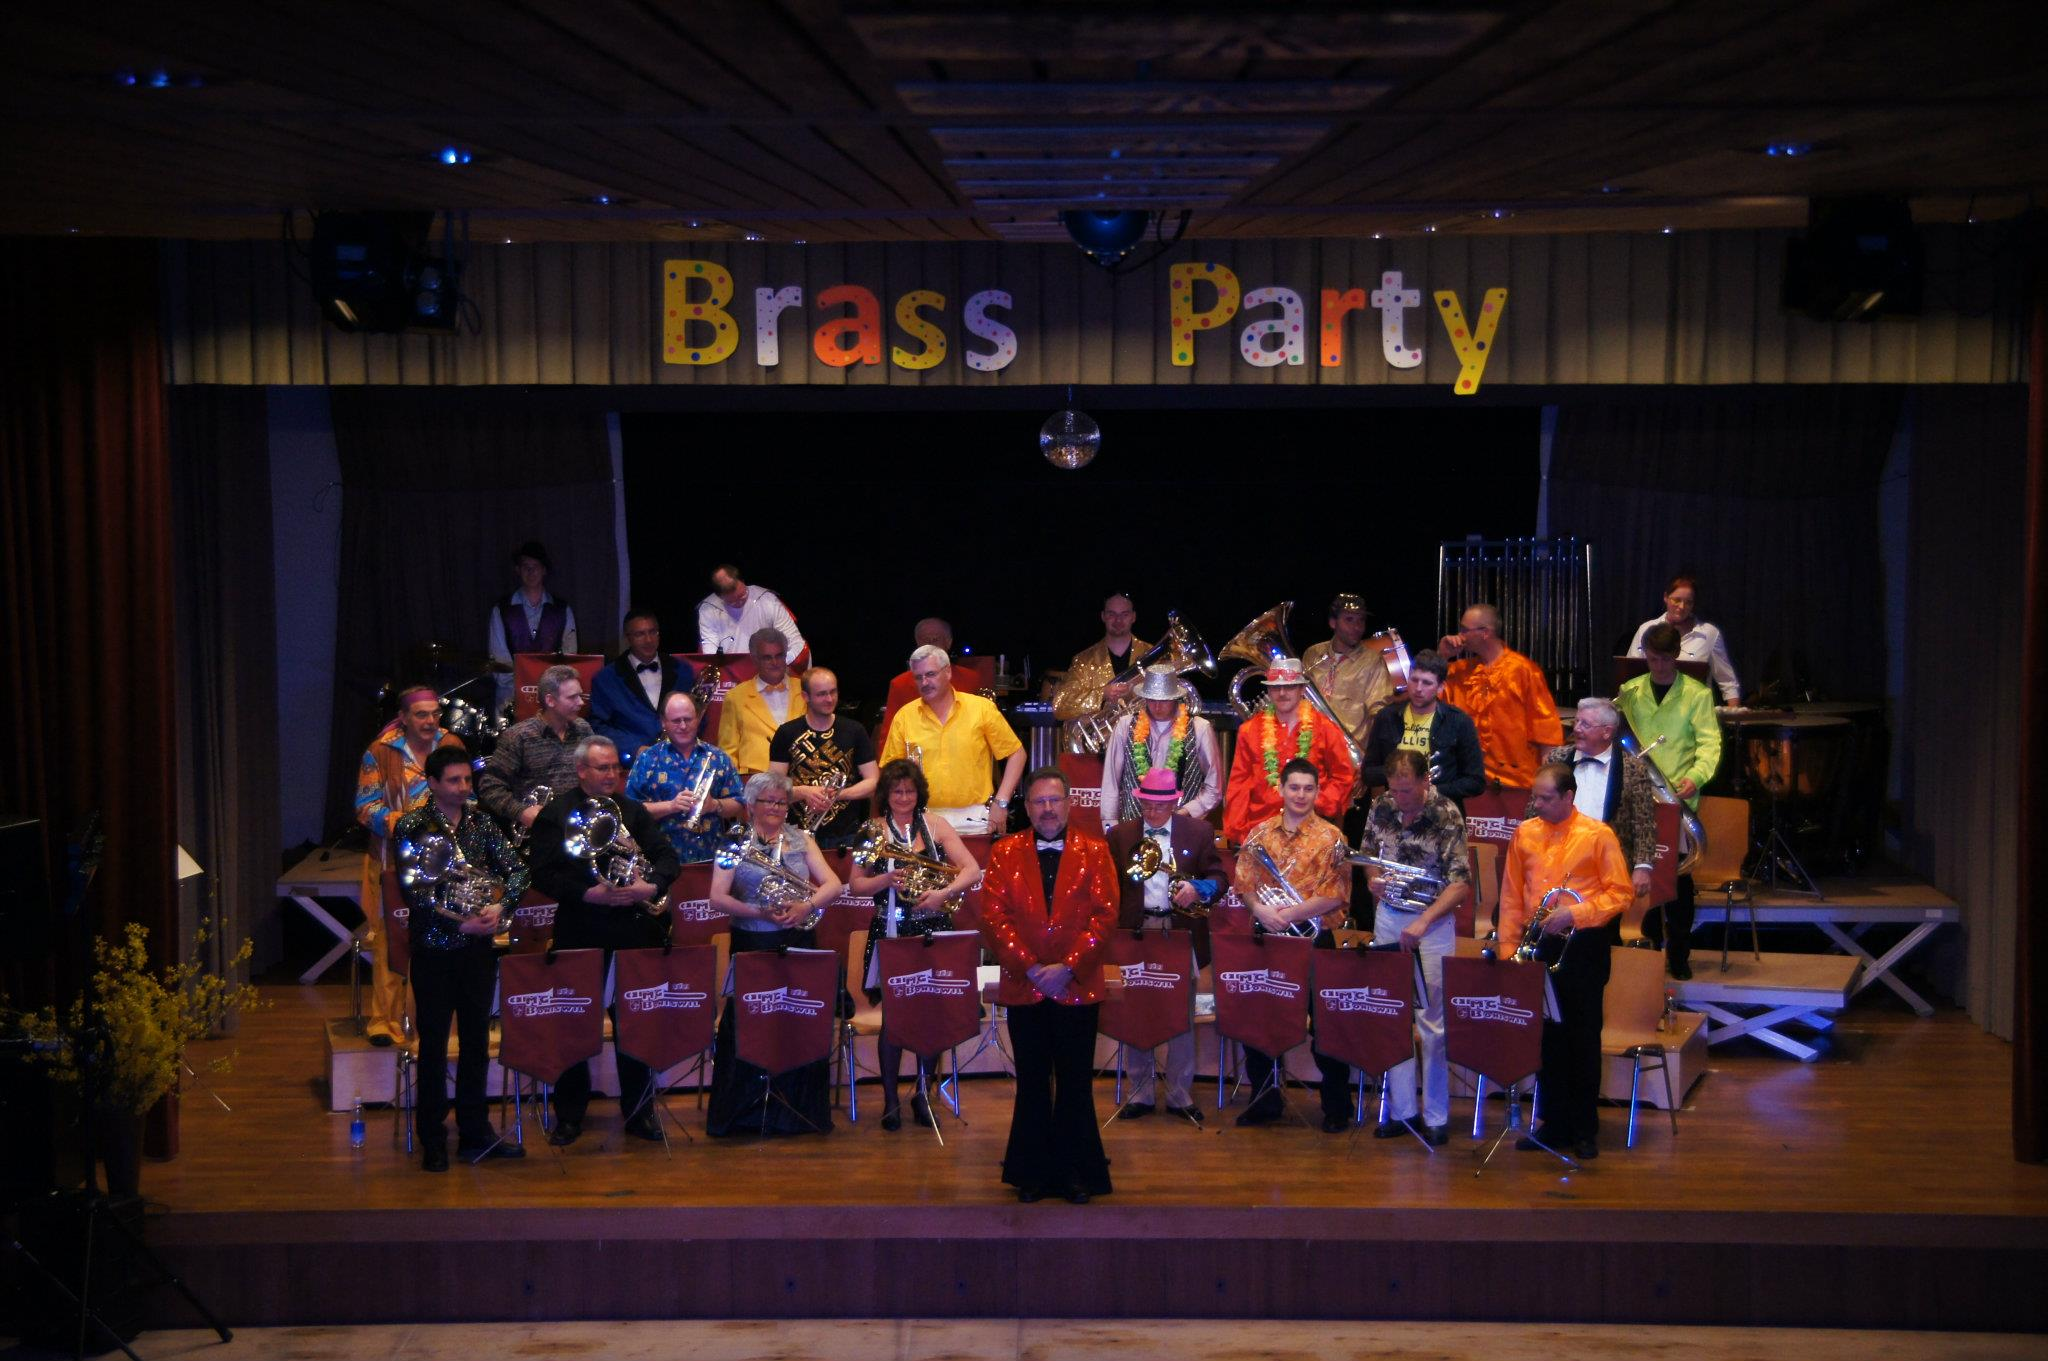 Brass Party